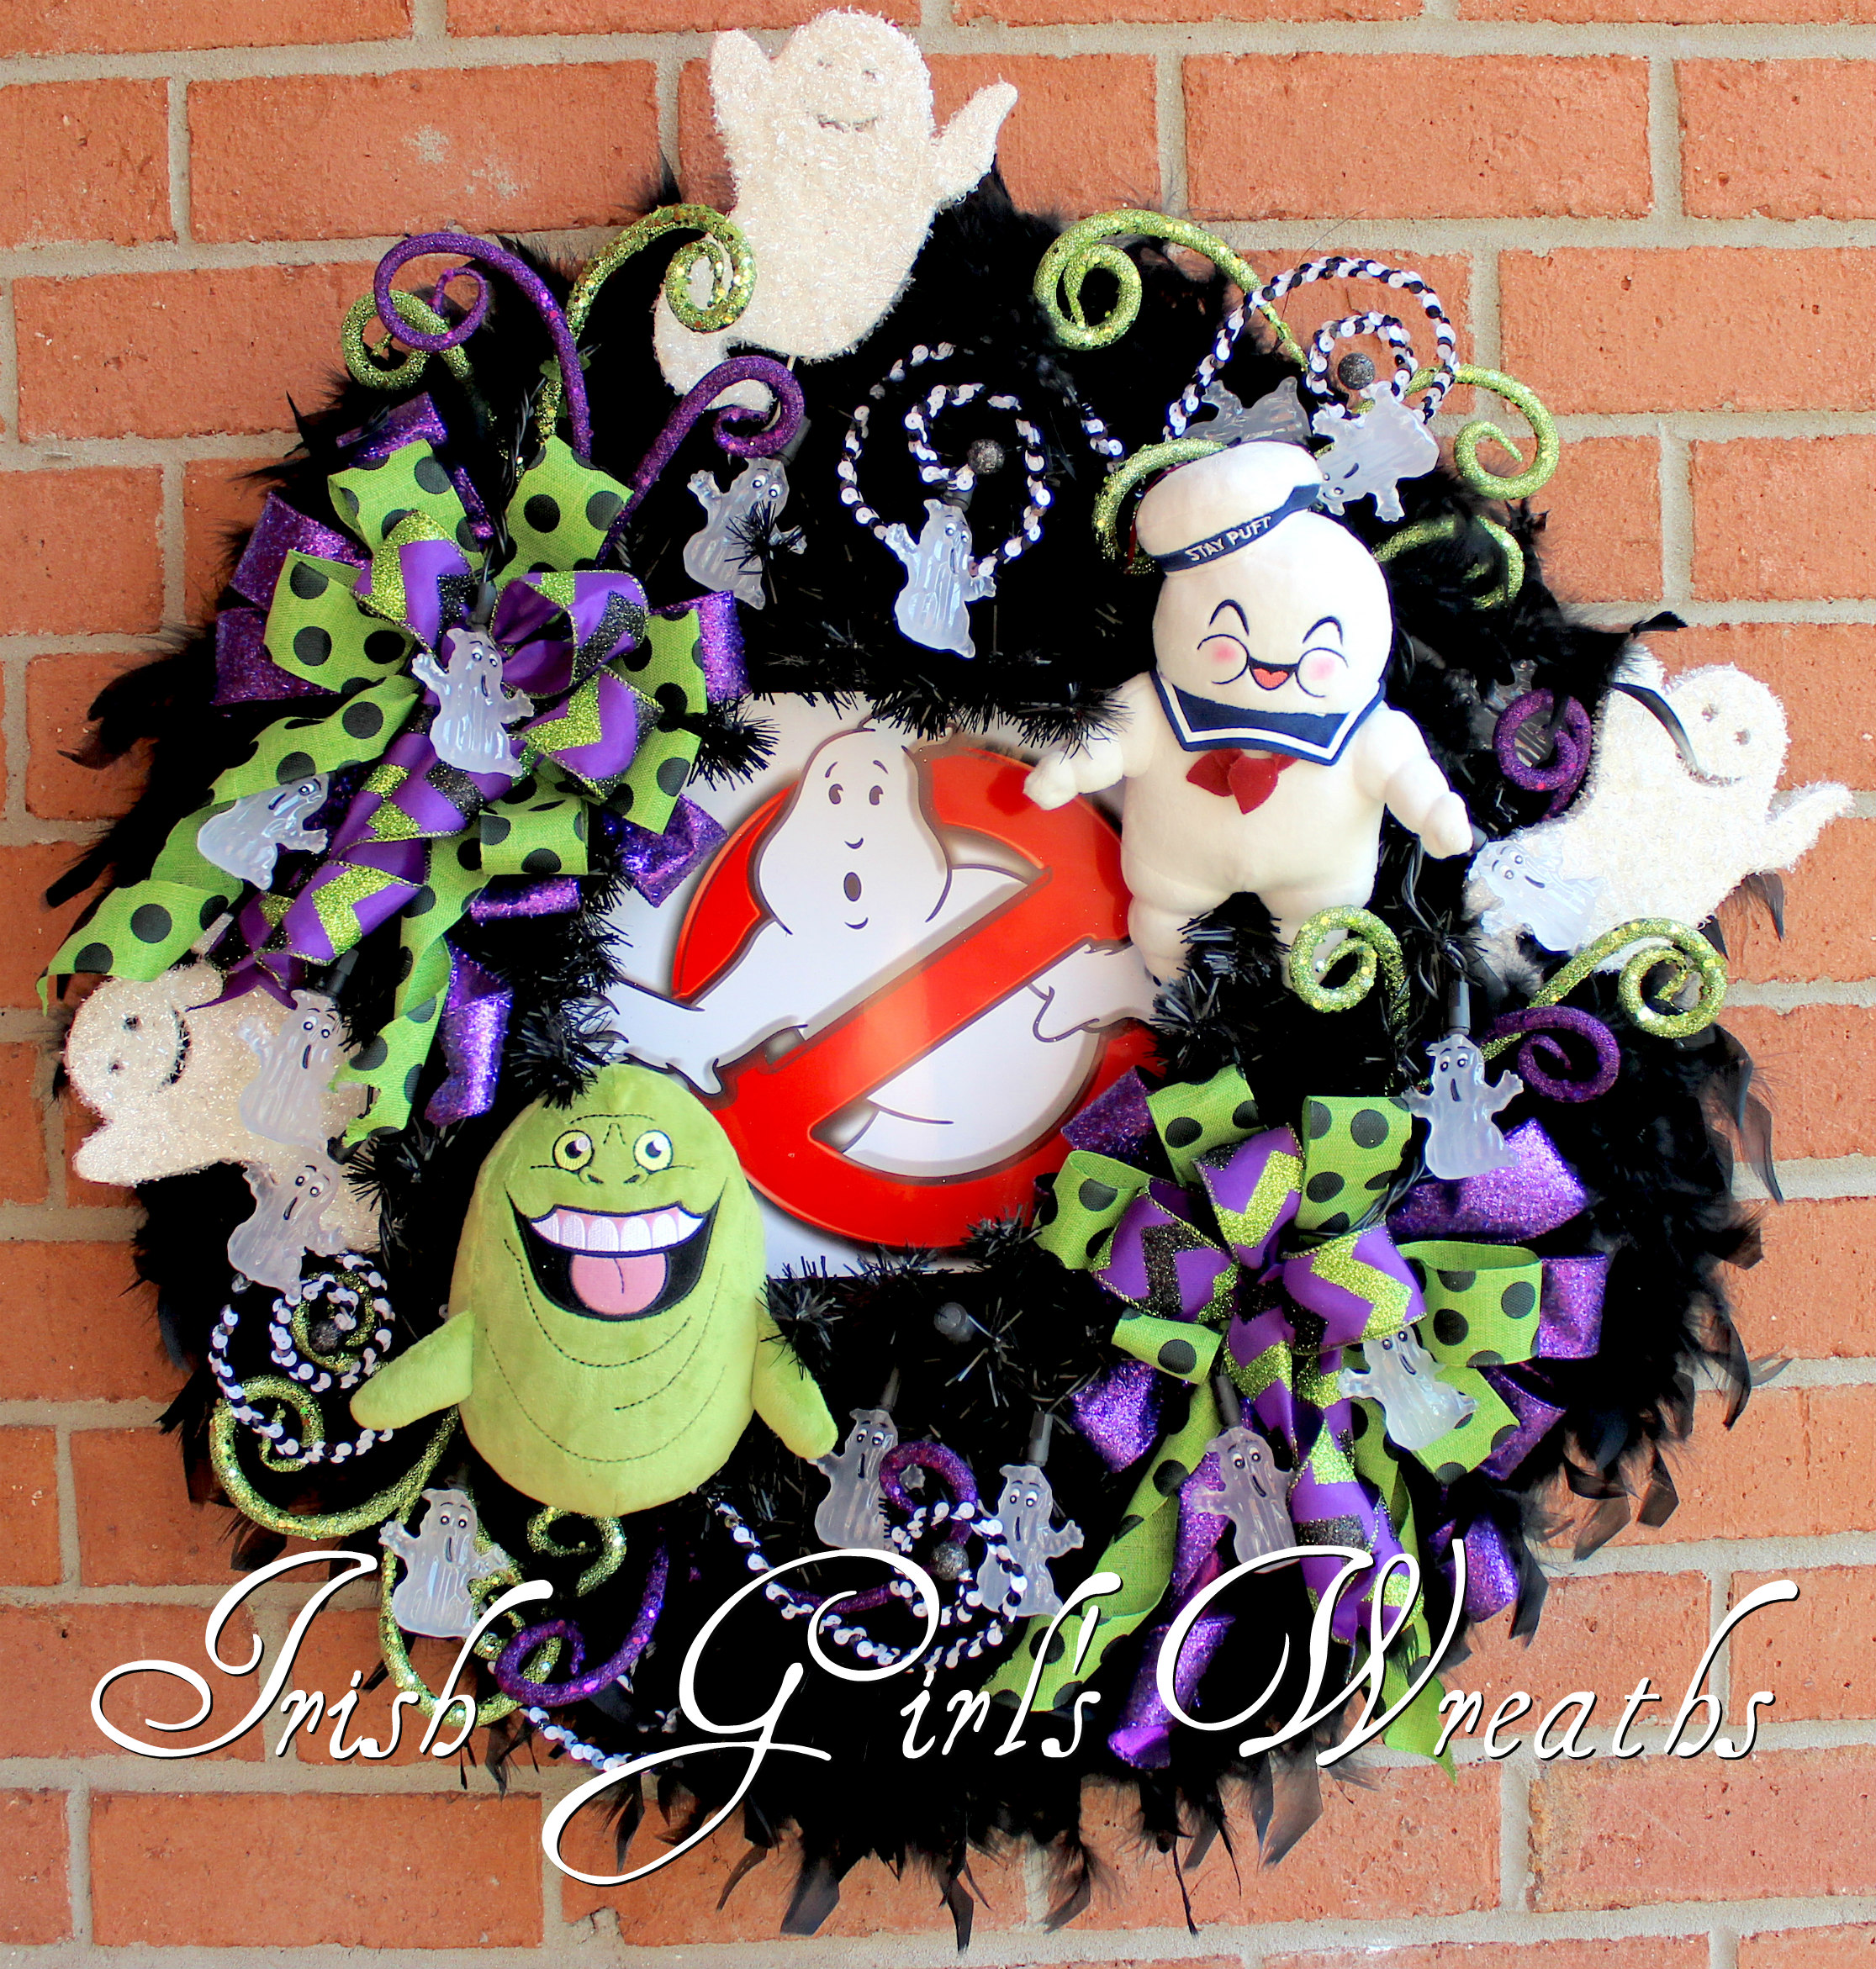 GhostBusters Halloween Wreath with LED ghost lights, Slimer Ghost, StayPuft Marshmallow Man, Who You Gonna Call